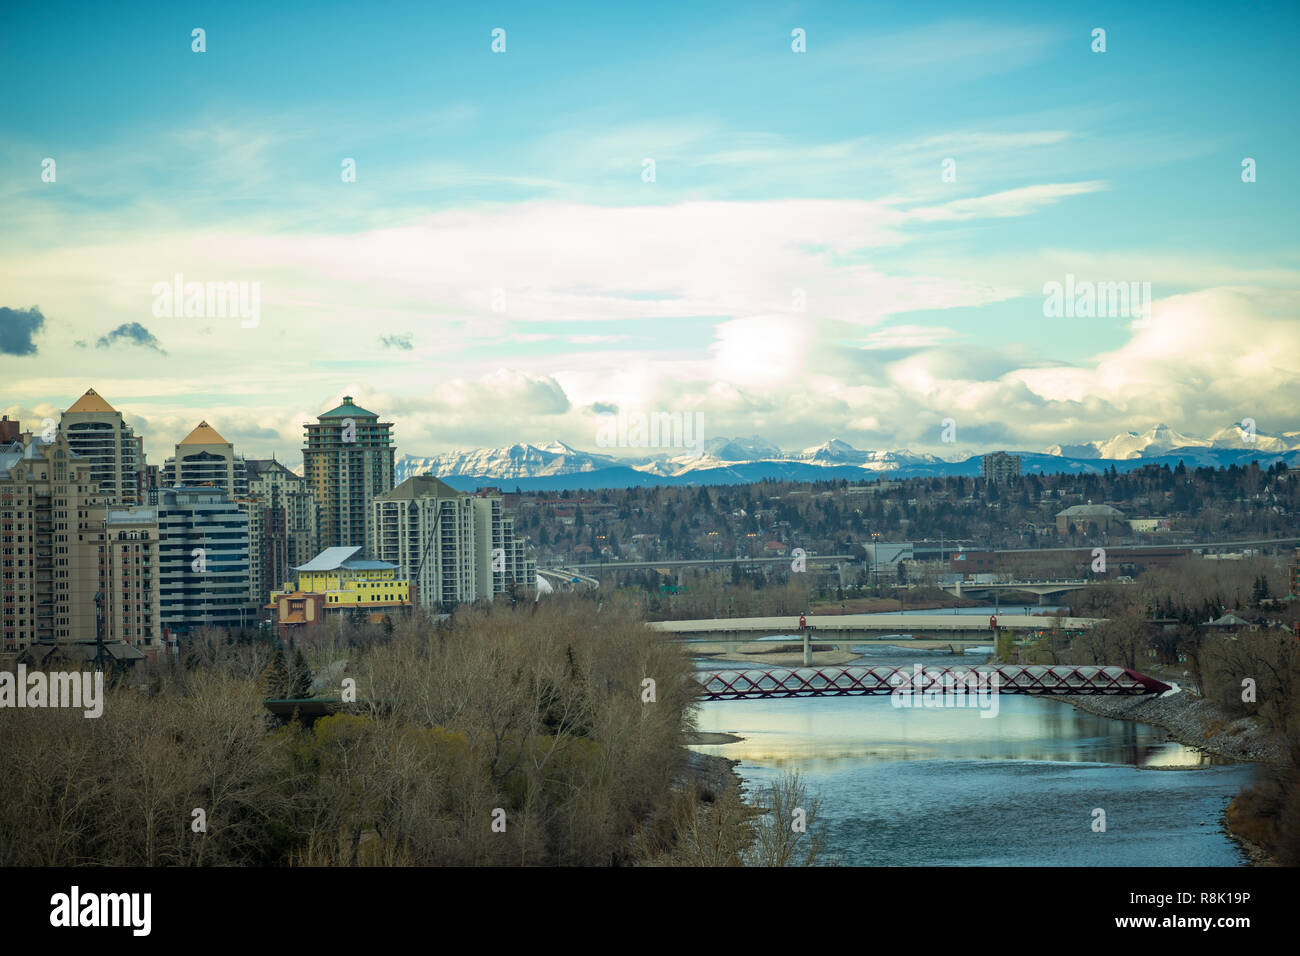 View of downtown Calgary with bridges and the rockies - Stock Image